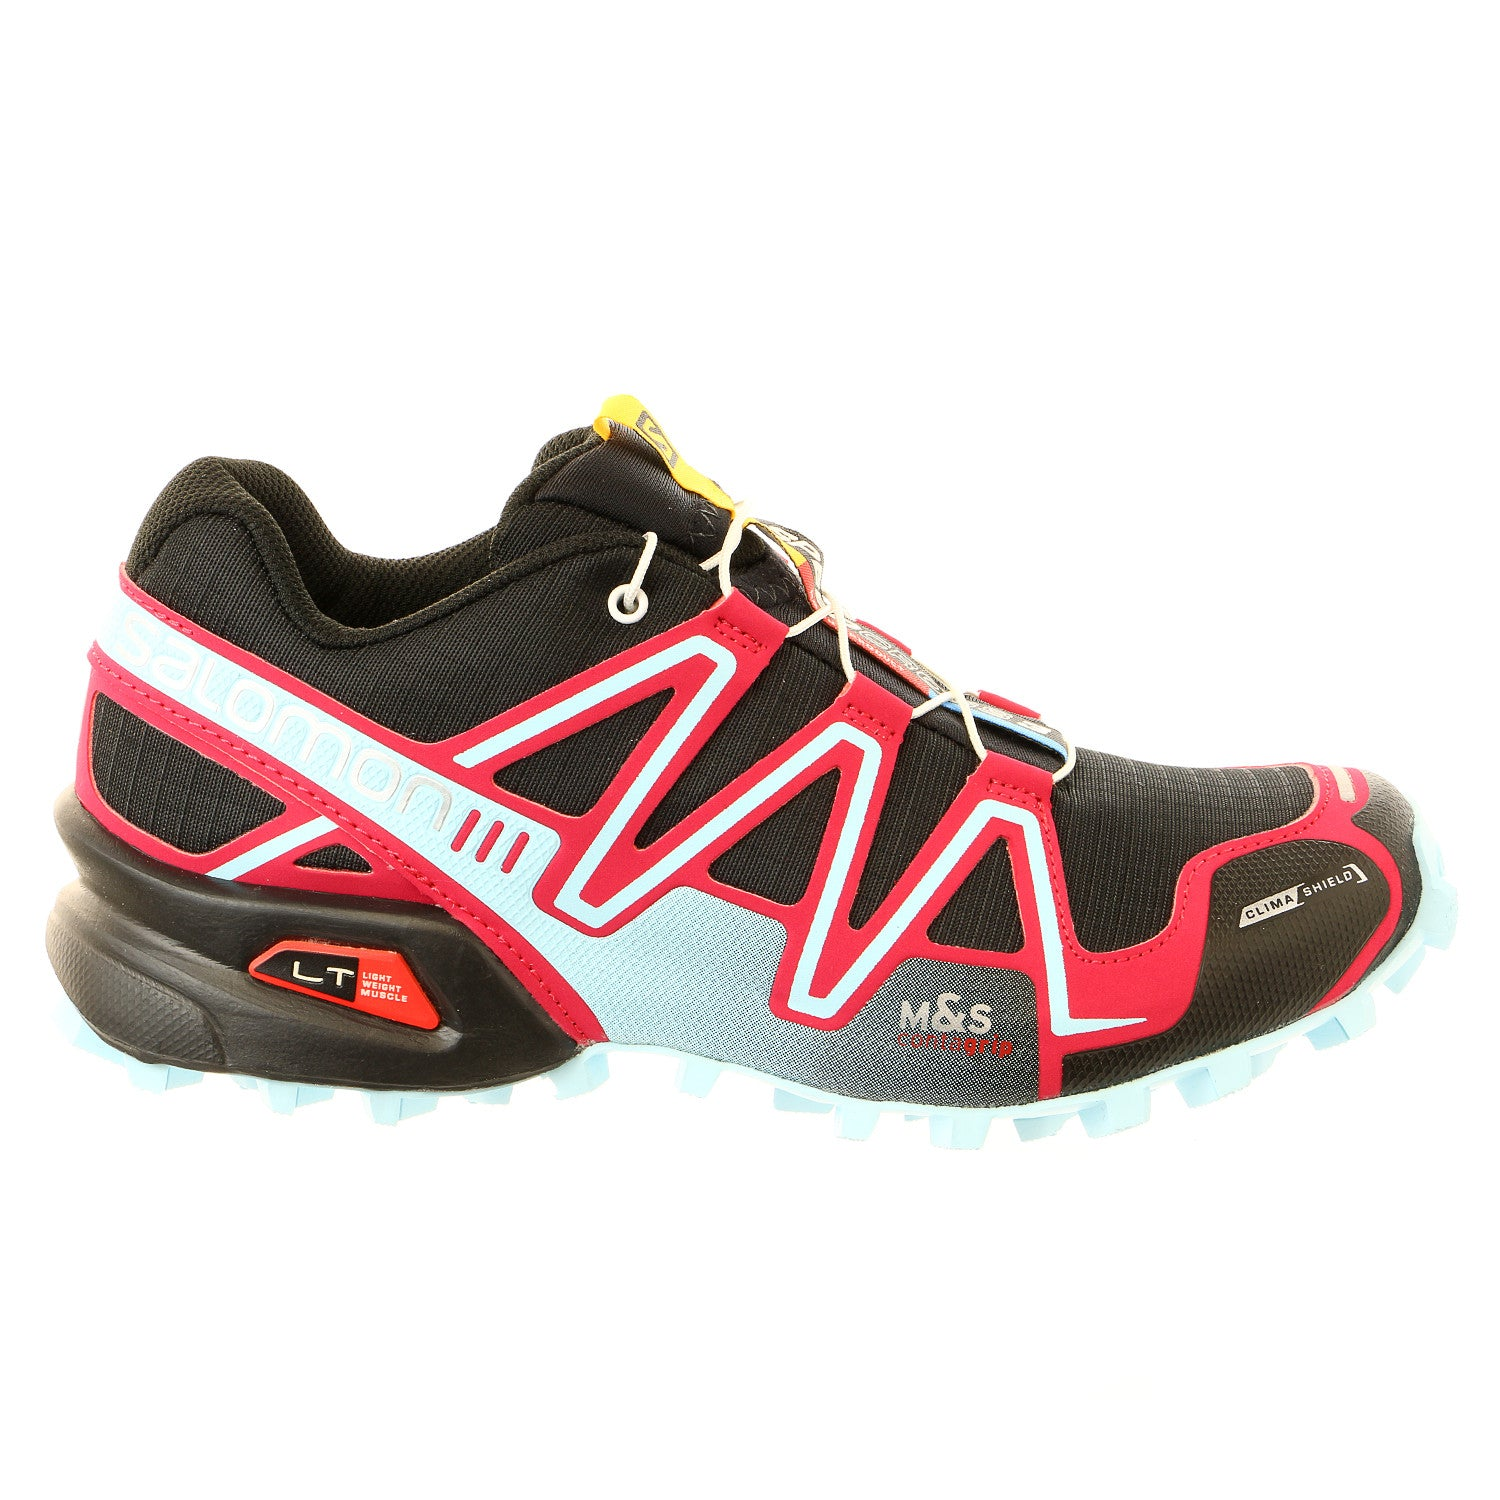 b76e6b8aa80c Salomon Speedcross 3 CS Trail Running Sneaker Shoe - Womens ...